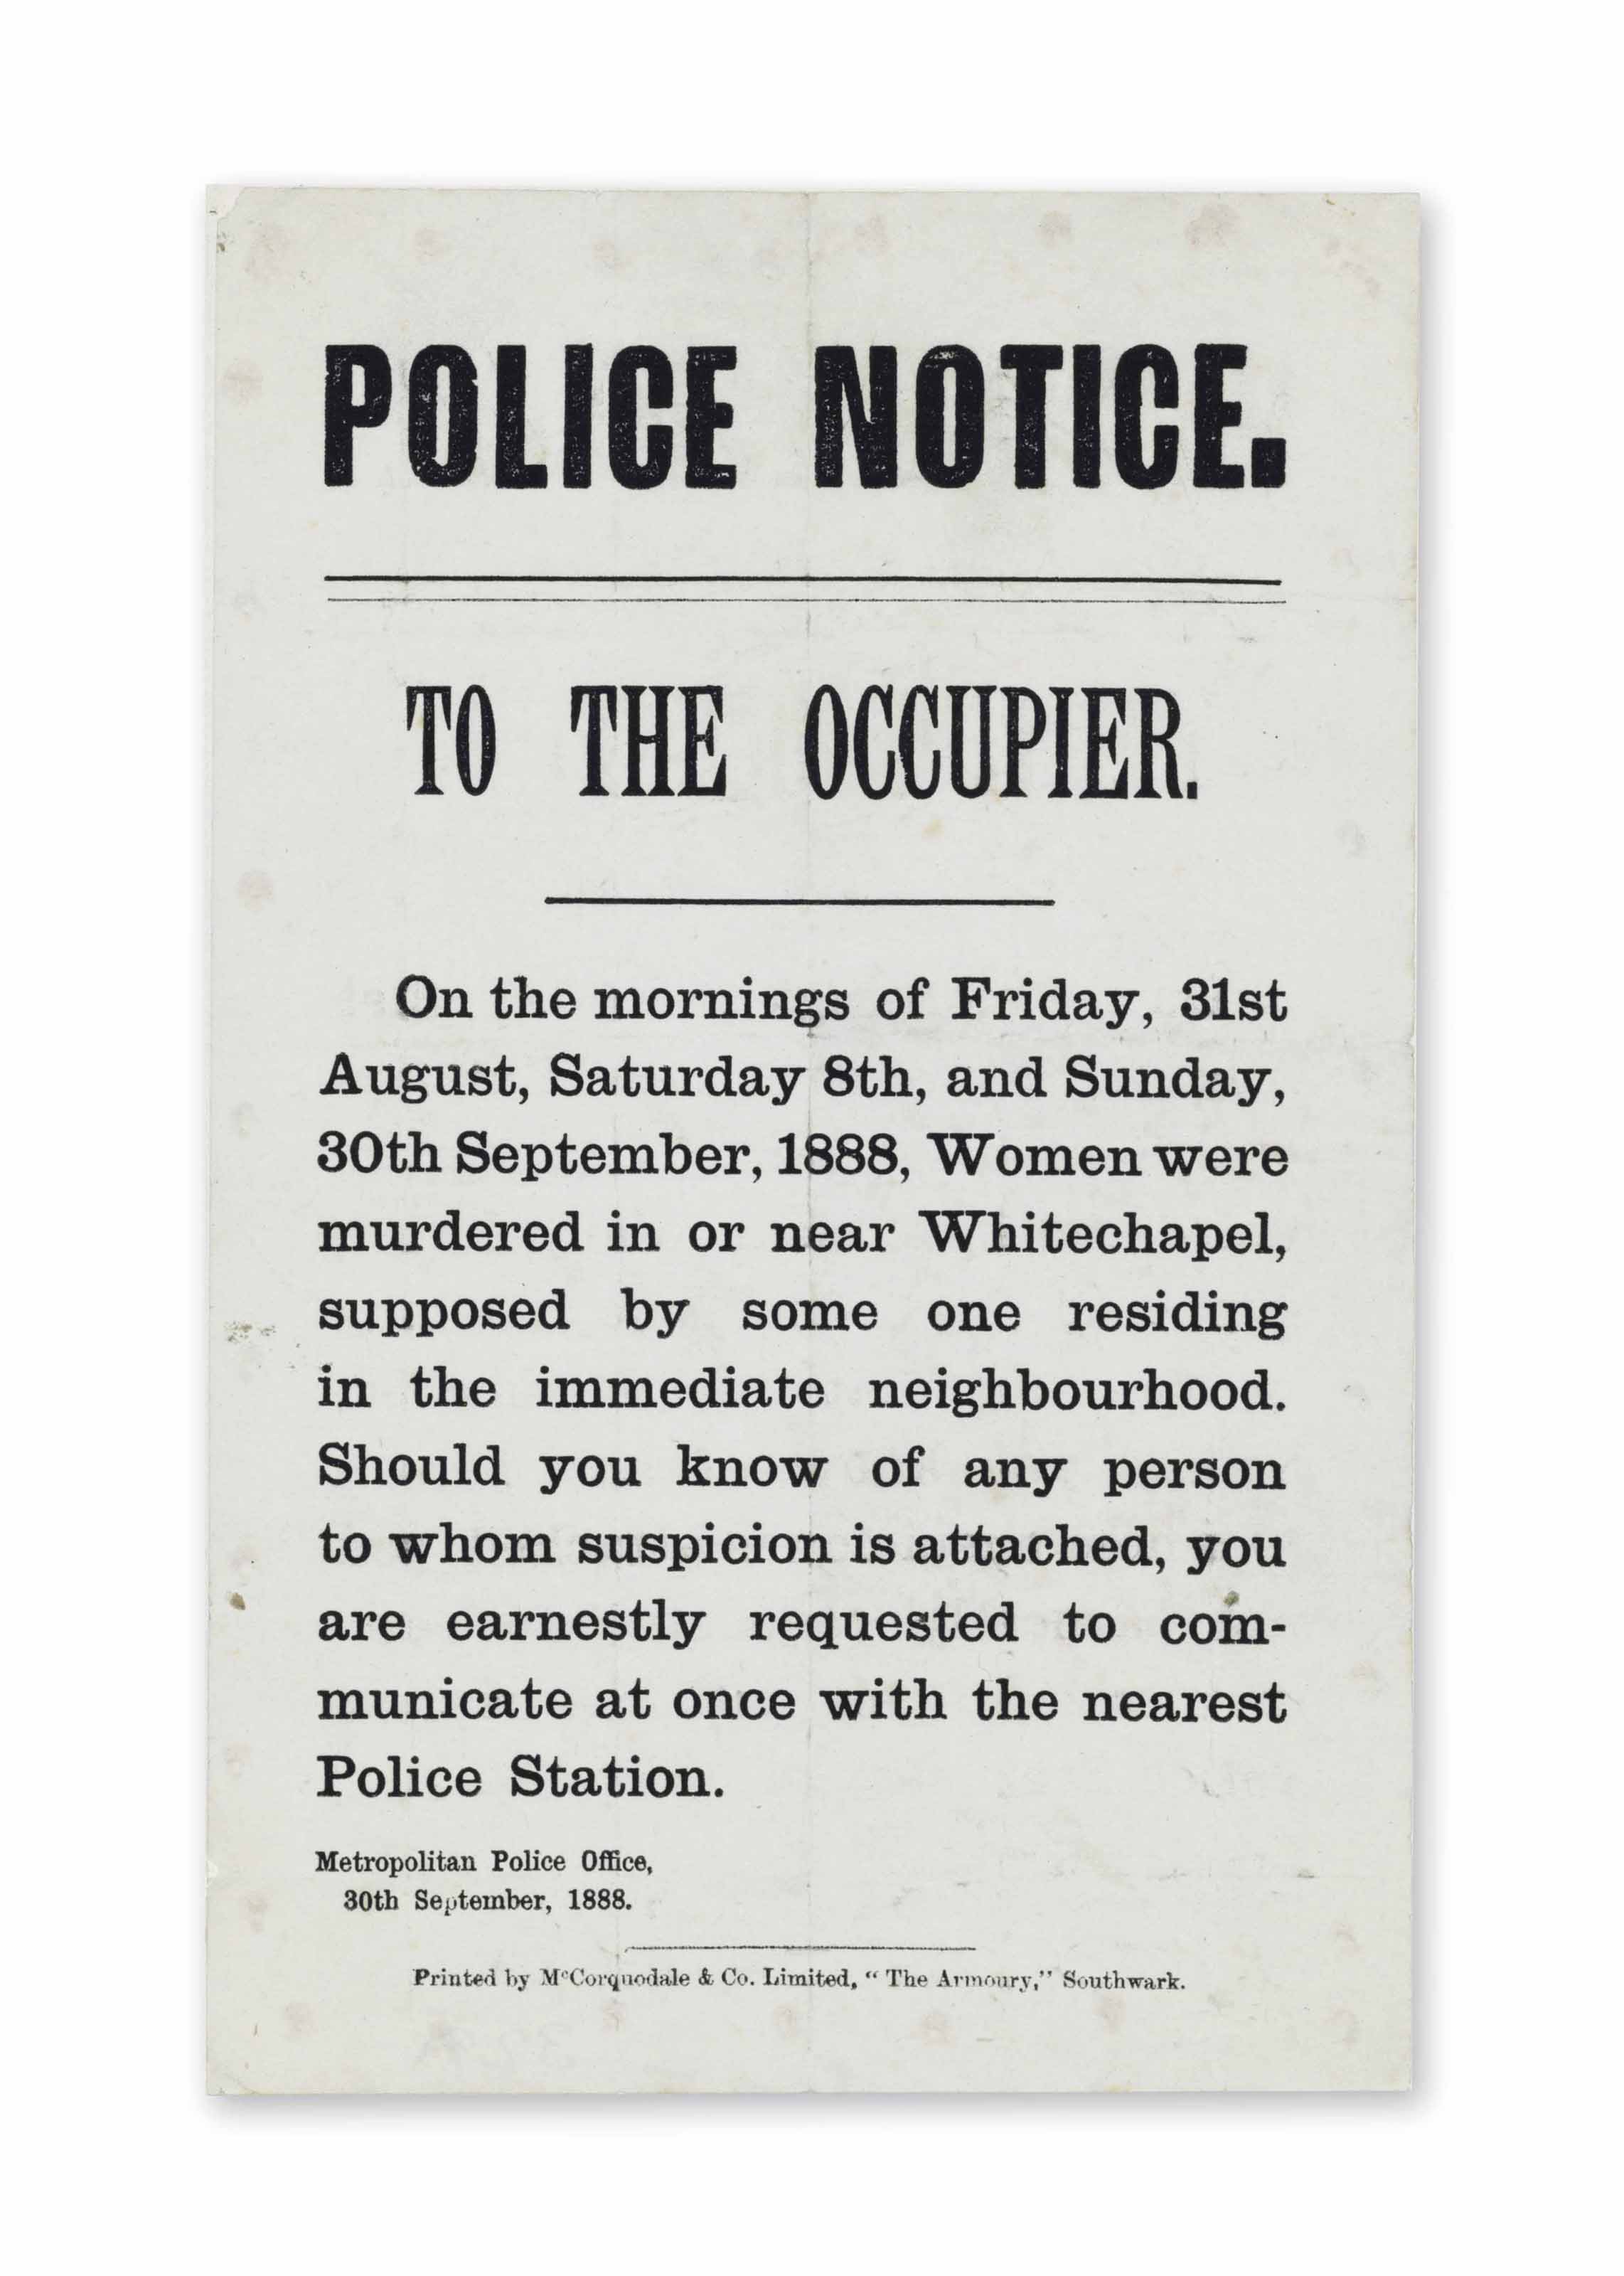 JACK THE RIPPER – METROPOLITAN POLICE OFFICE. Police Notice. To the Occupier. On the mornings of Friday, 31st August, Saturday 8th, and Sunday, 30th September, 1888, Women were murdered in or near Whitechapel, supposed by some one residing in the immediate neighborhood… London: printed by McCorquodale & Co., 30 September 1888.